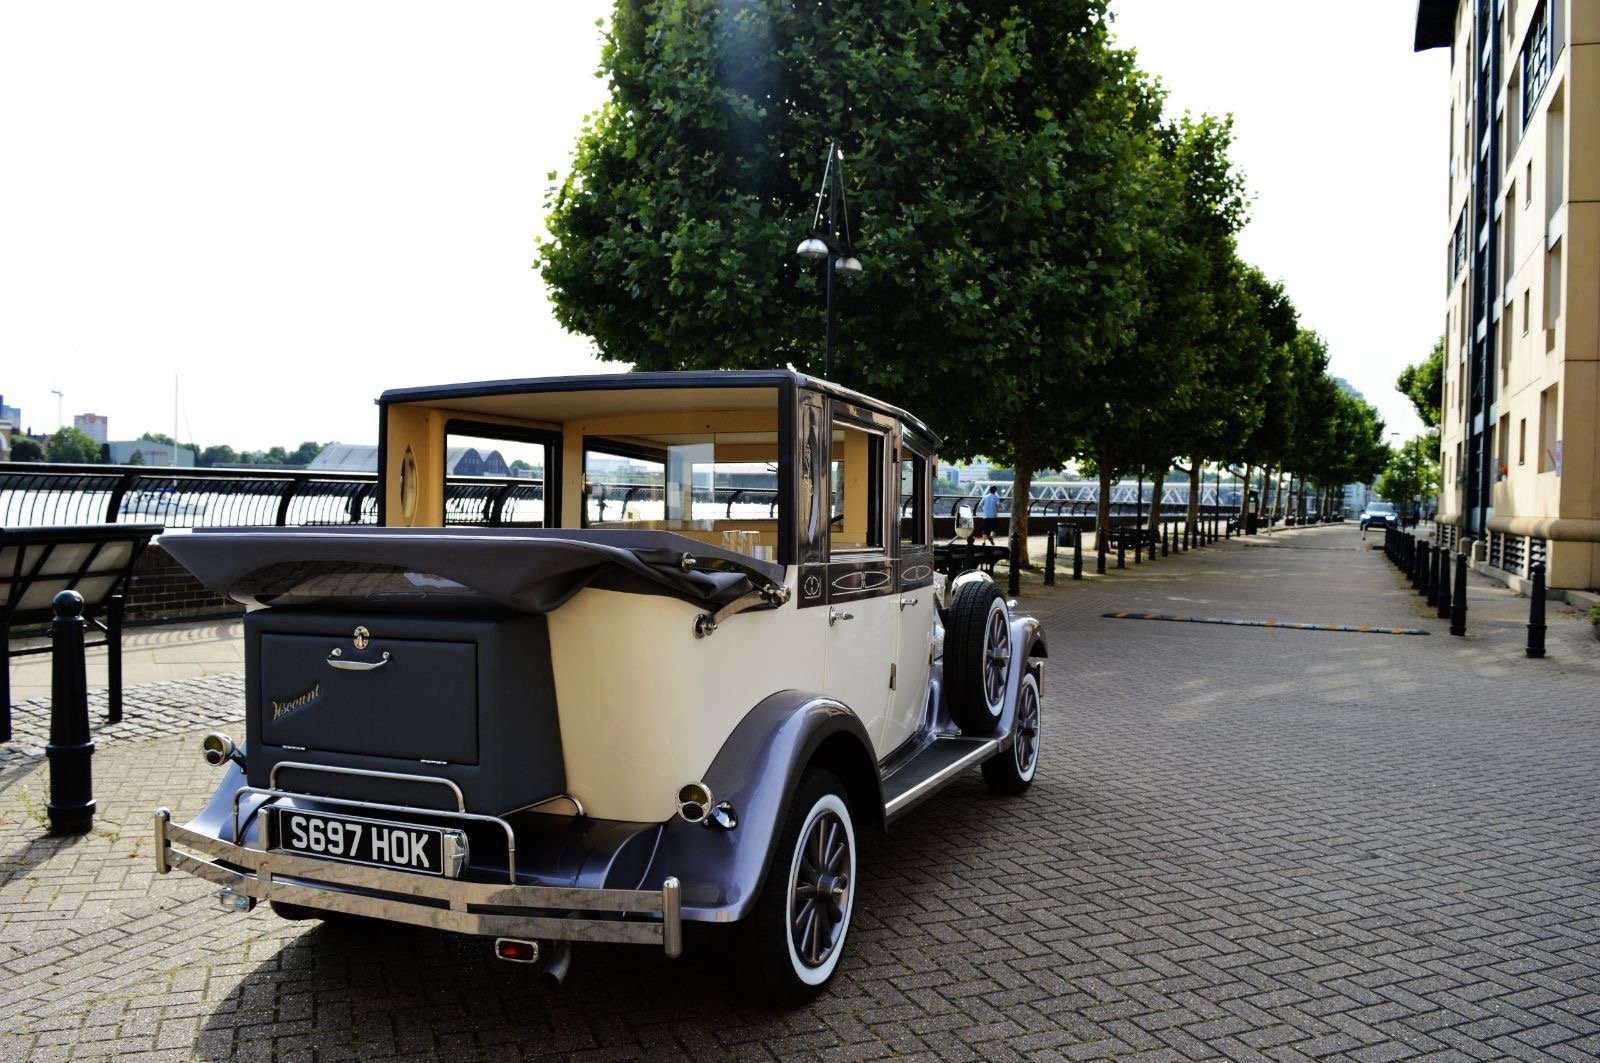 2018 Vintage wedding car hire For Hire (picture 4 of 6)